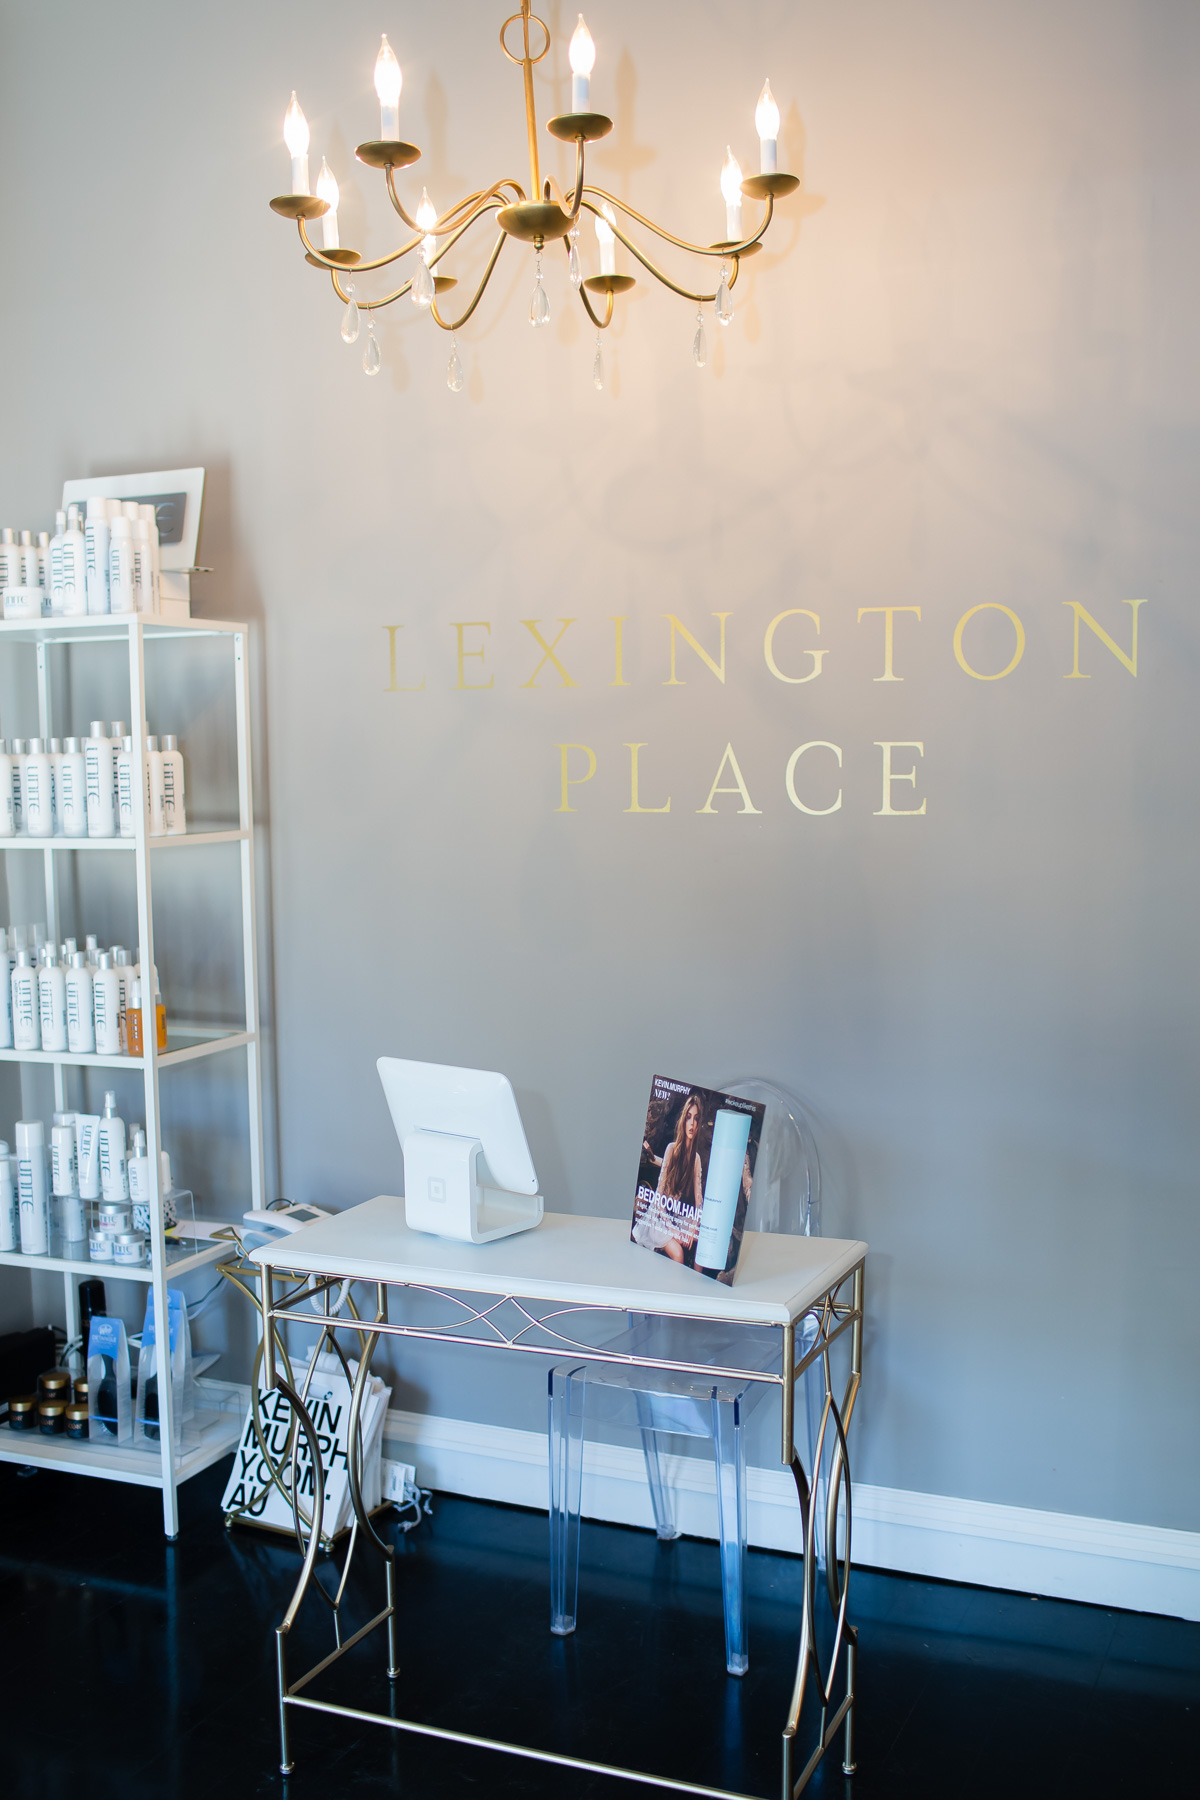 San Francisco hair salon Lexington Place